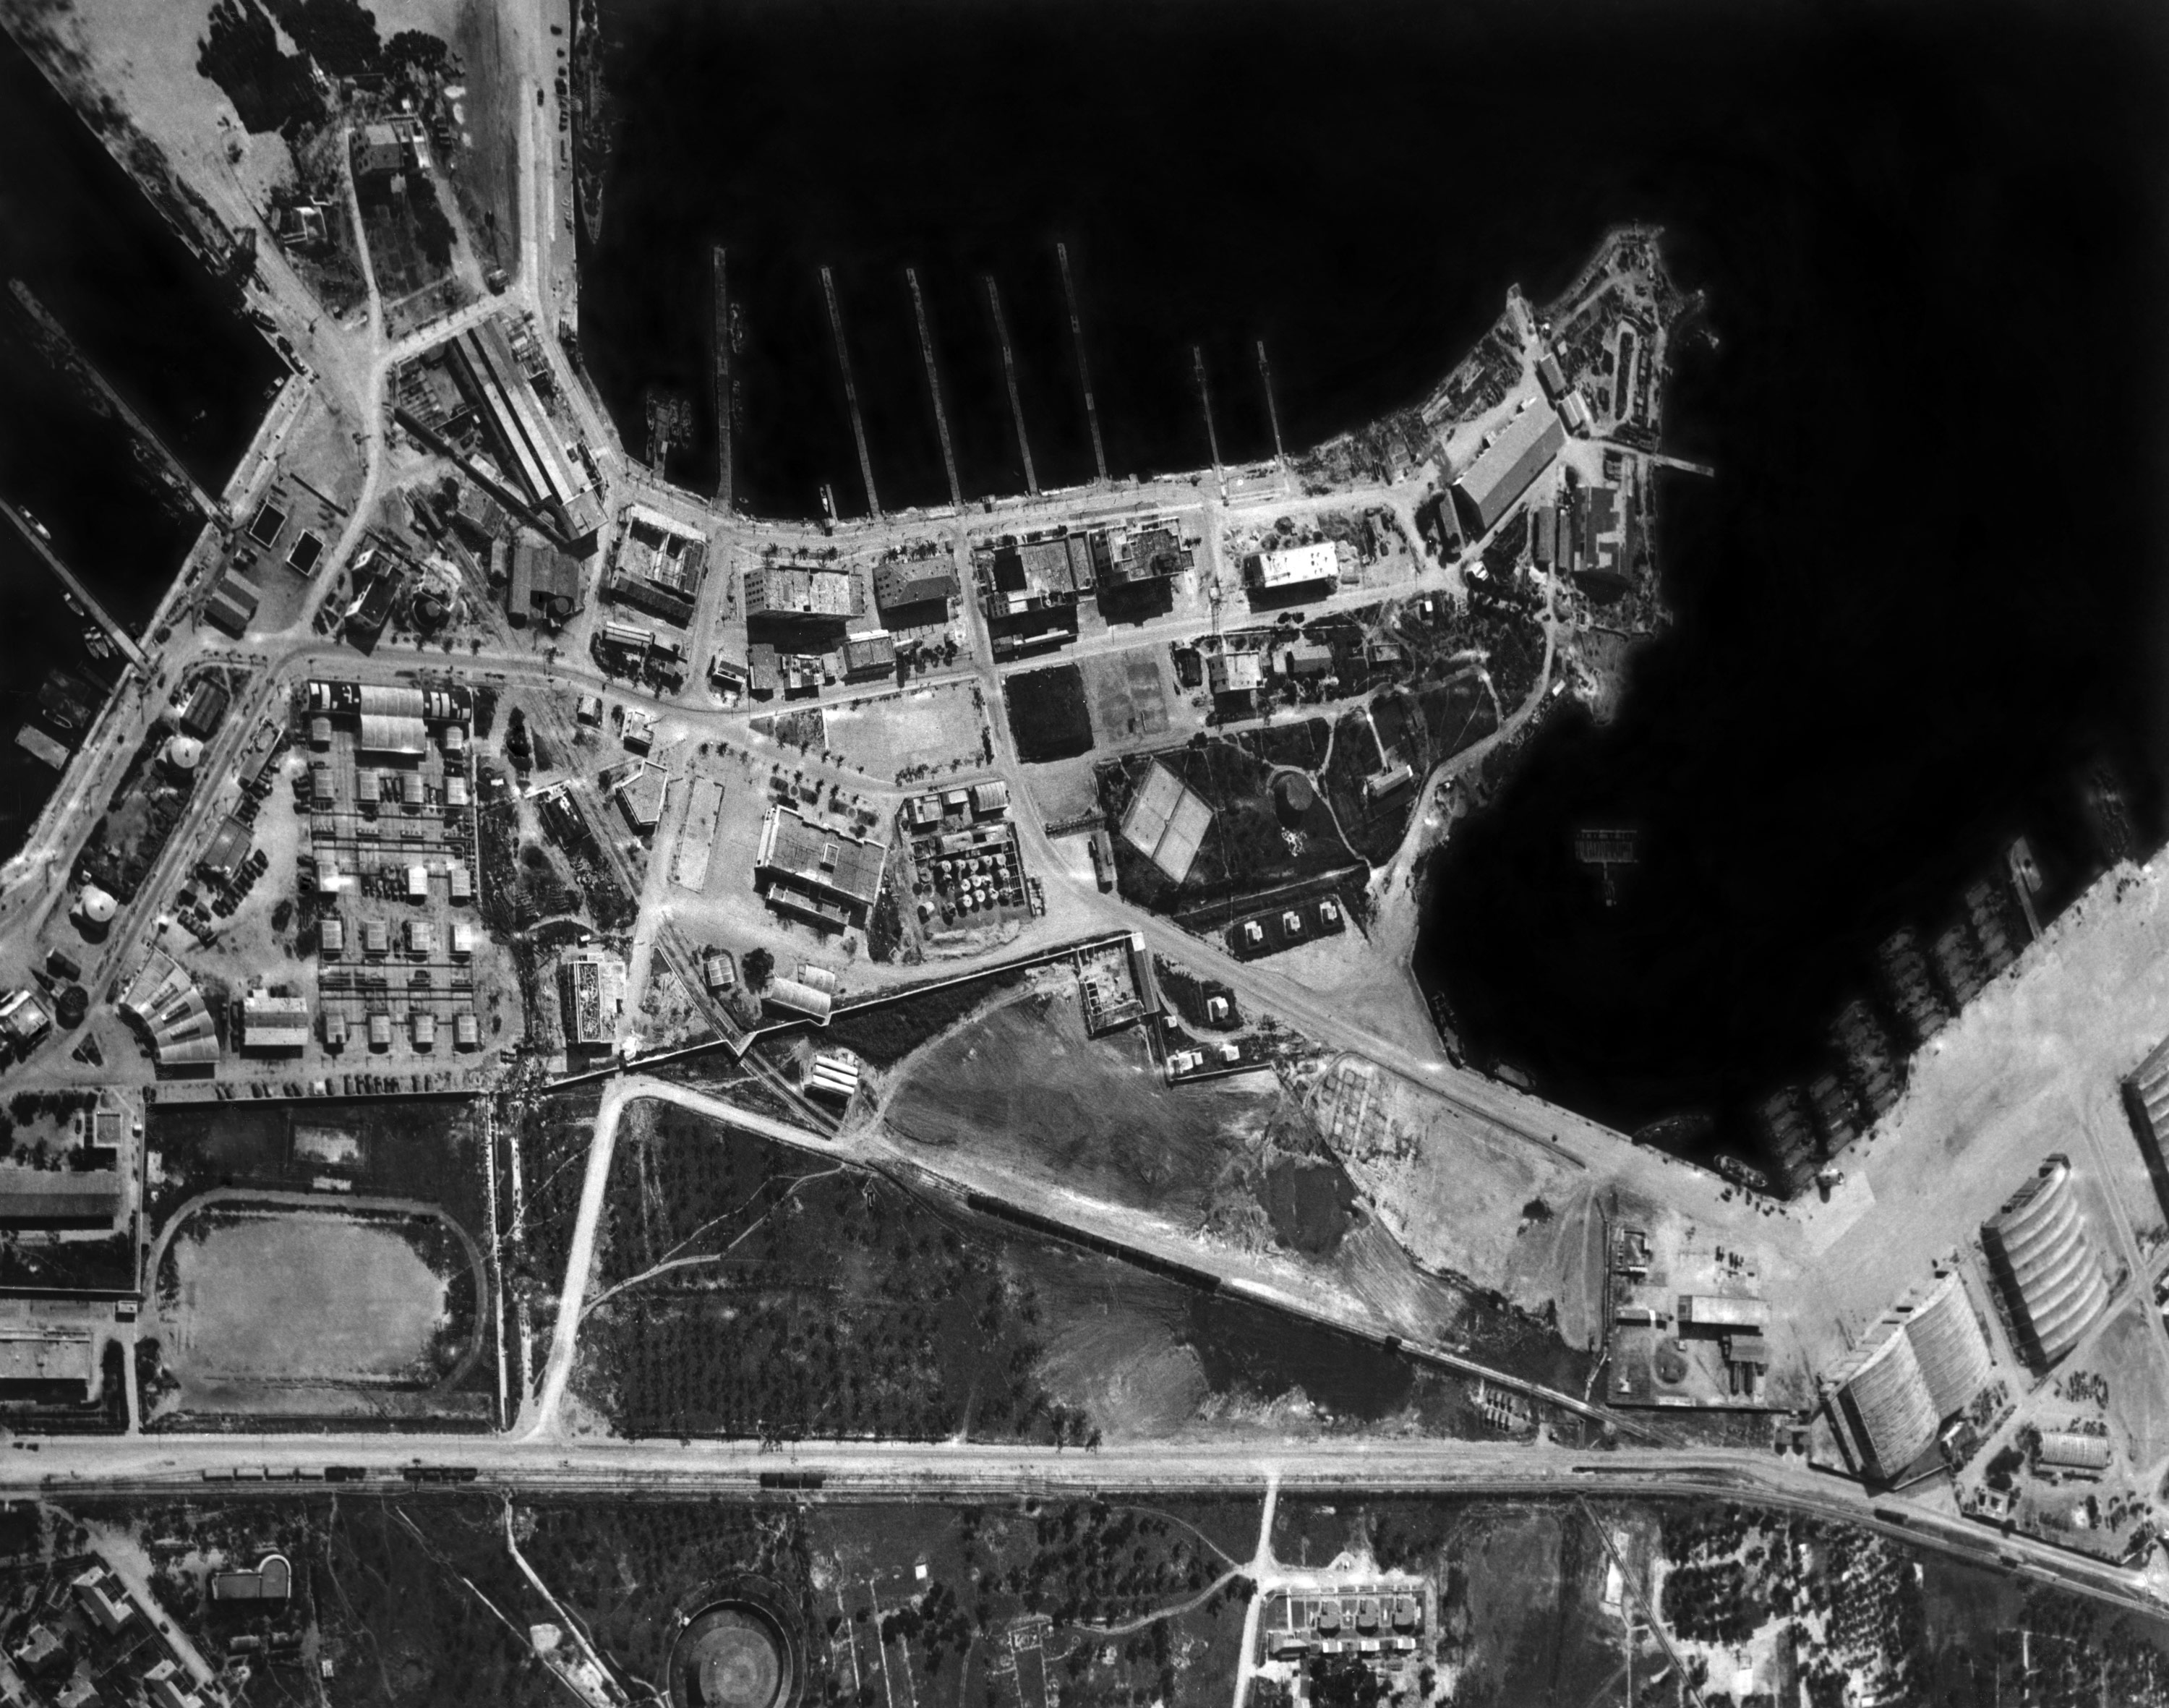 1945 - US Naval base in Bizerte, Tunisia from 5000 feet